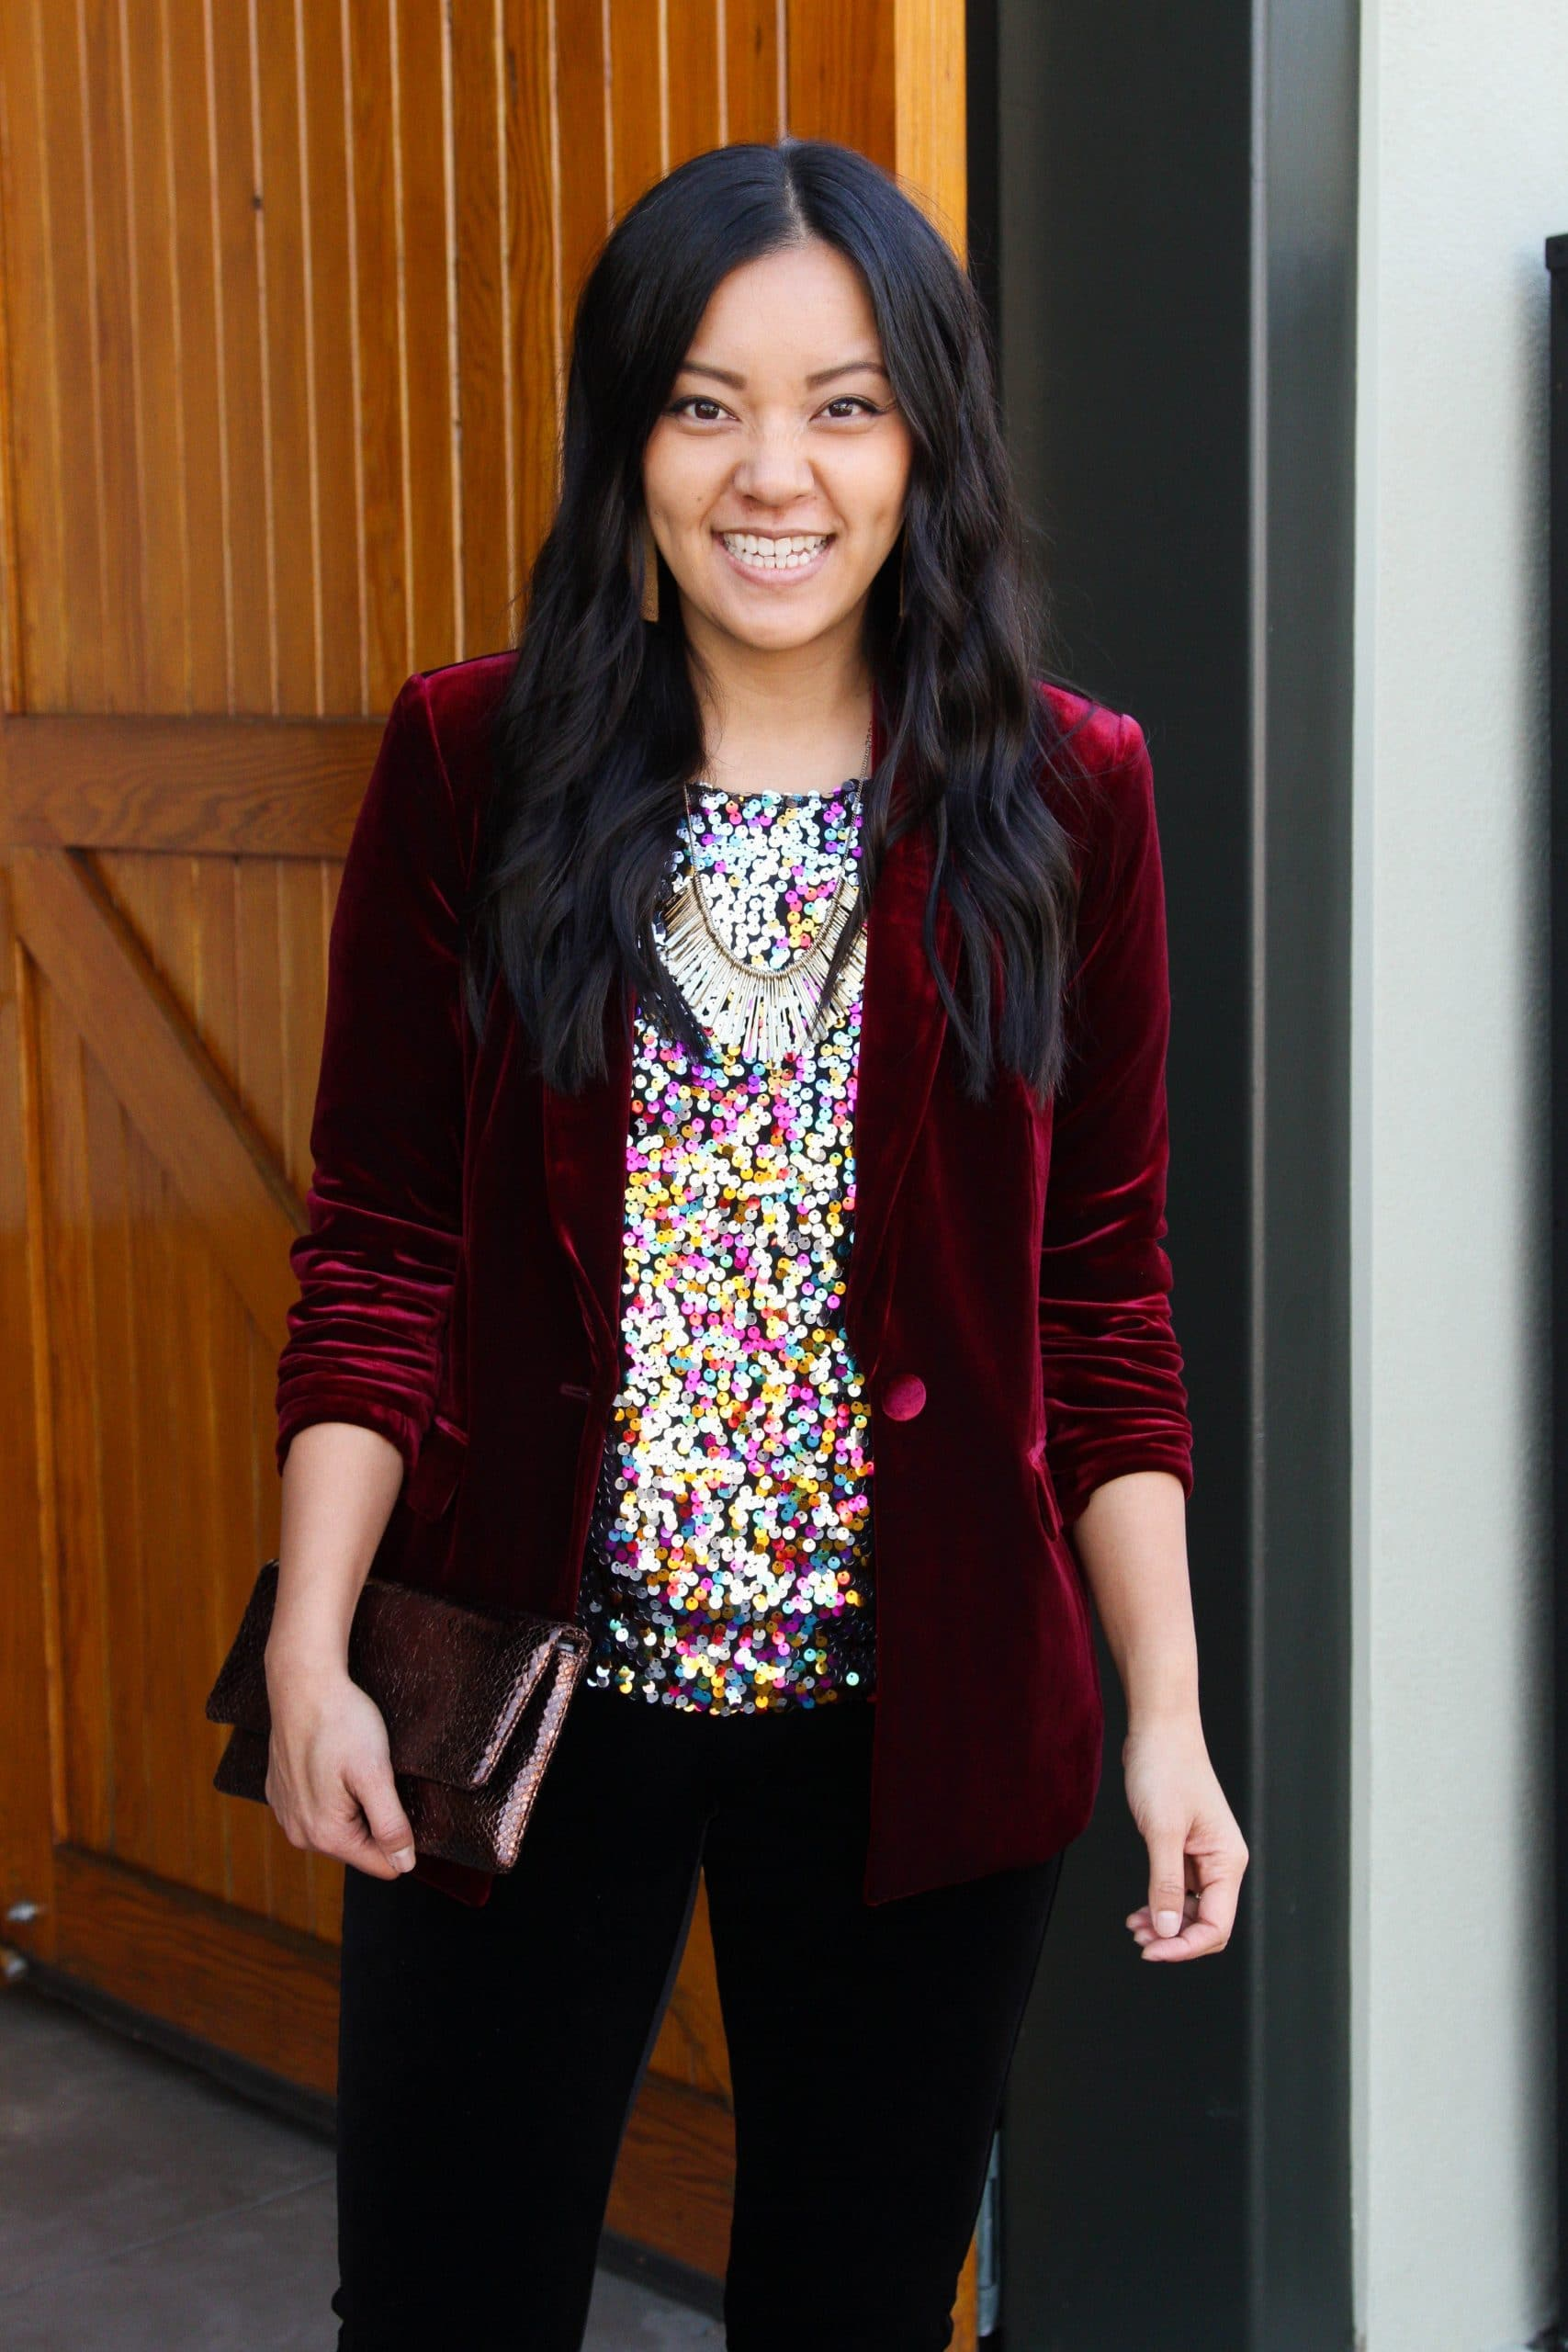 maroon velvet blazer + colored sequins top + black velvet leggings + black booties